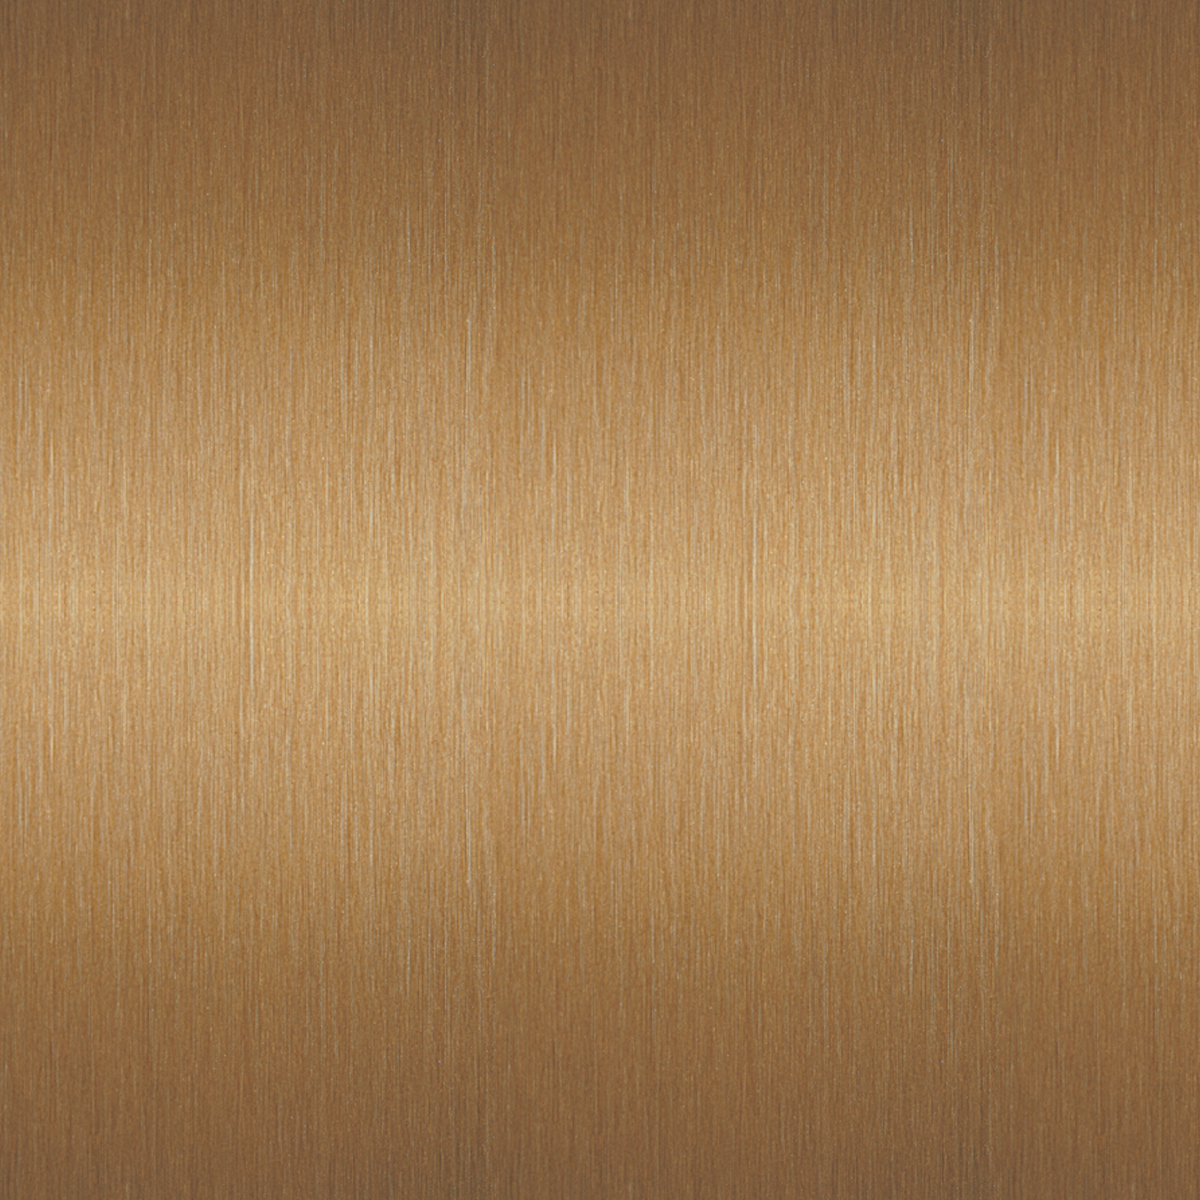 Copper Laminate Countertops M2126 Brushed Brasstoned Aluminium Laminate Countertops